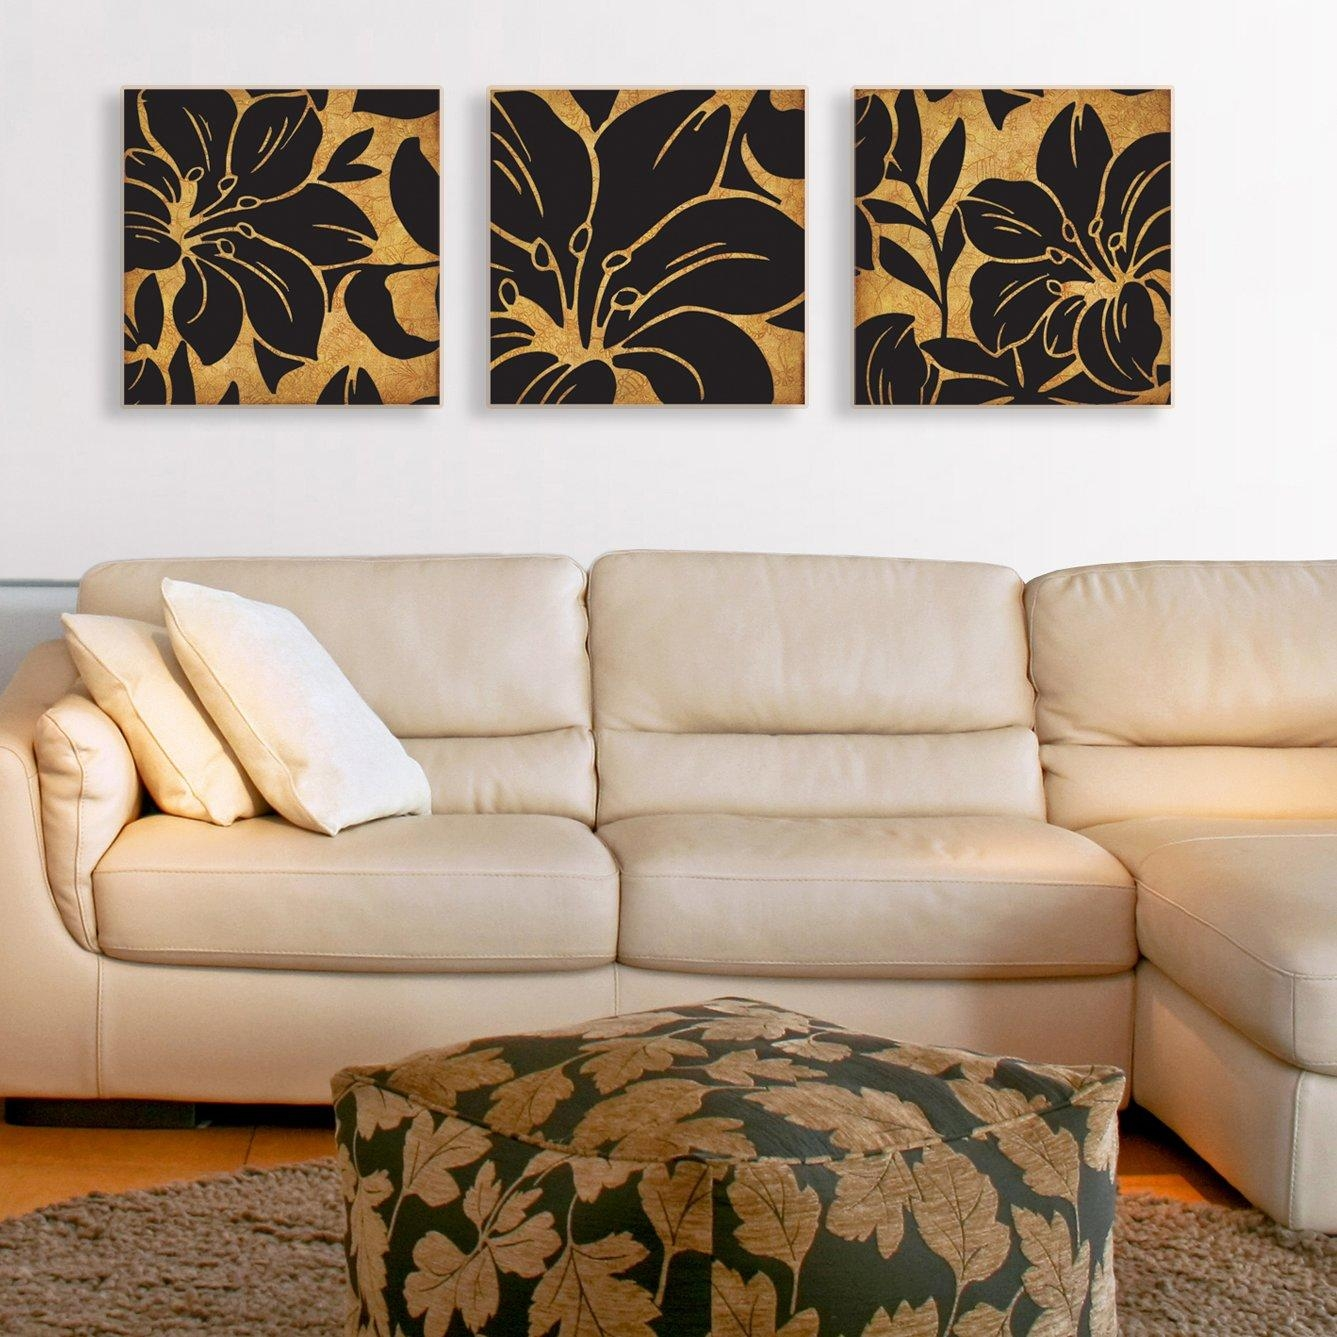 3 Piece Wall Art   Roselawnlutheran With Regard To 3 Piece Wall Art Sets (View 15 of 20)